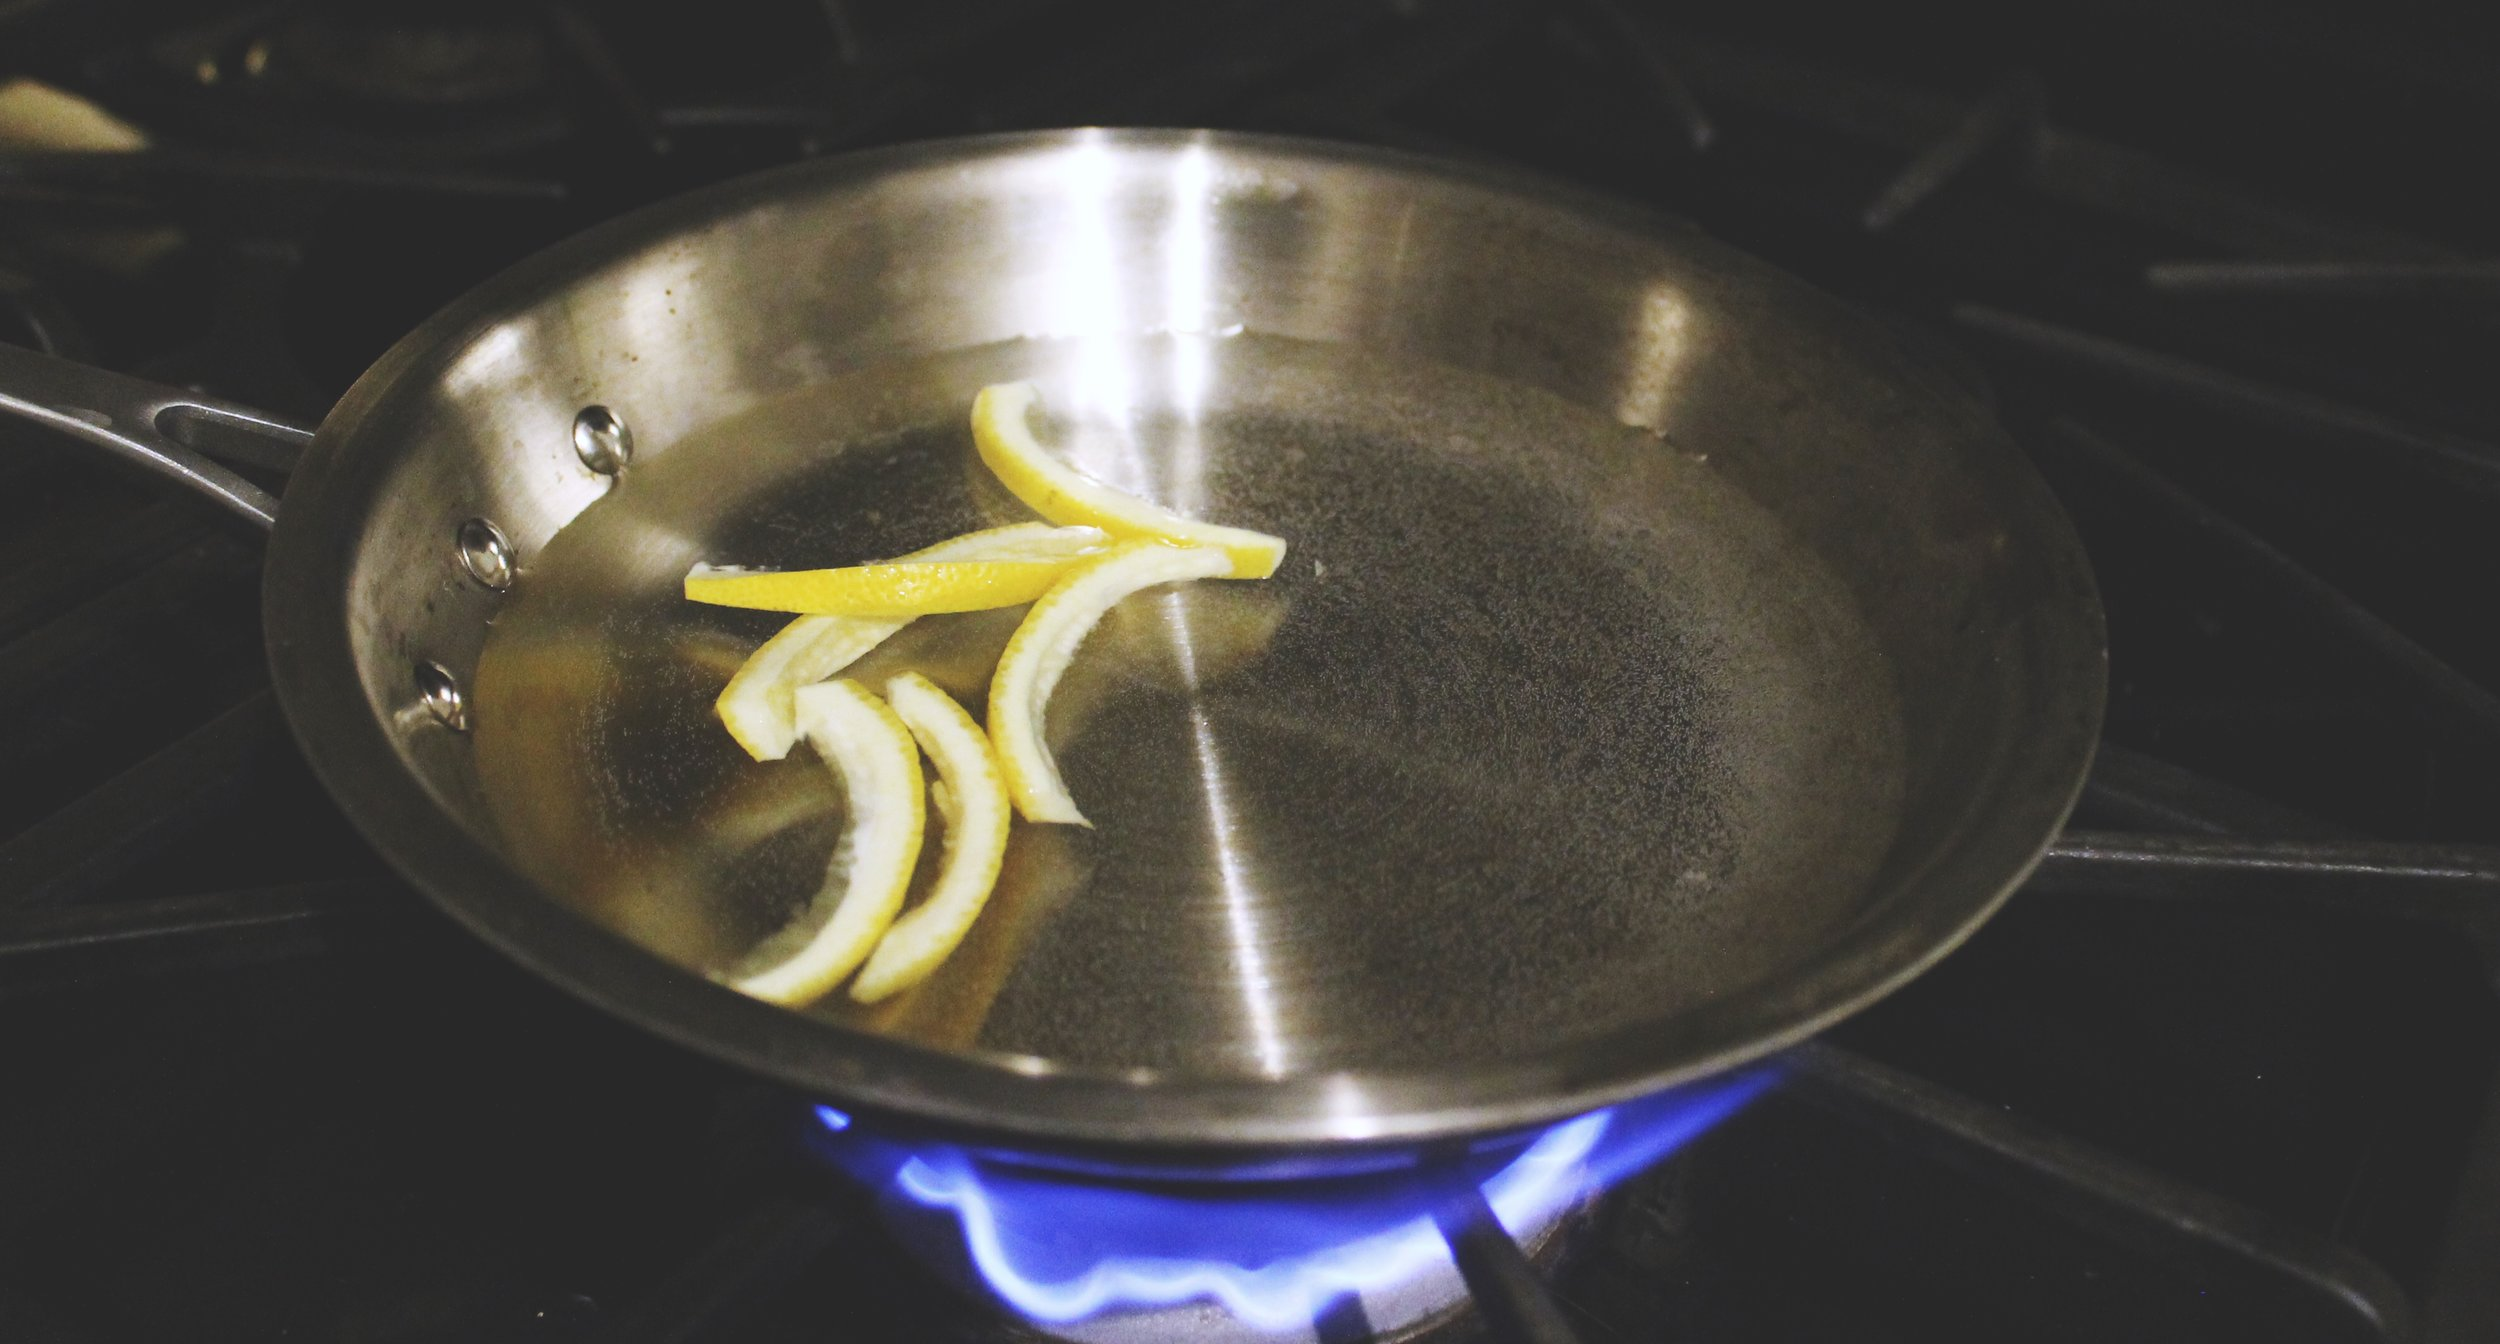 Cover peels with water in a pan. Bring to a boil and simmer for 1 minute. Drain and repeat 2x.